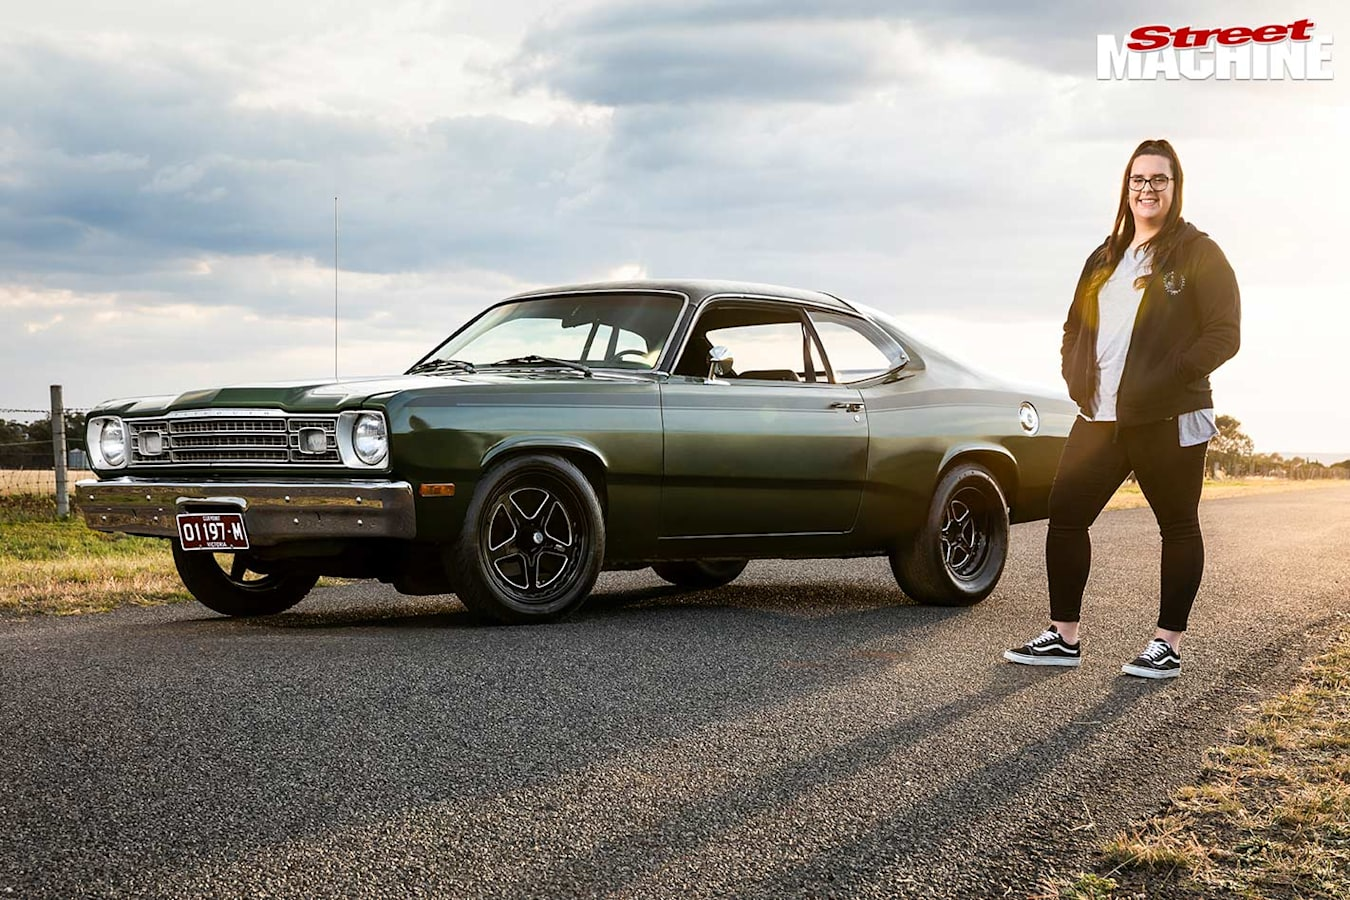 Bianca Cilia's Plymouth Duster